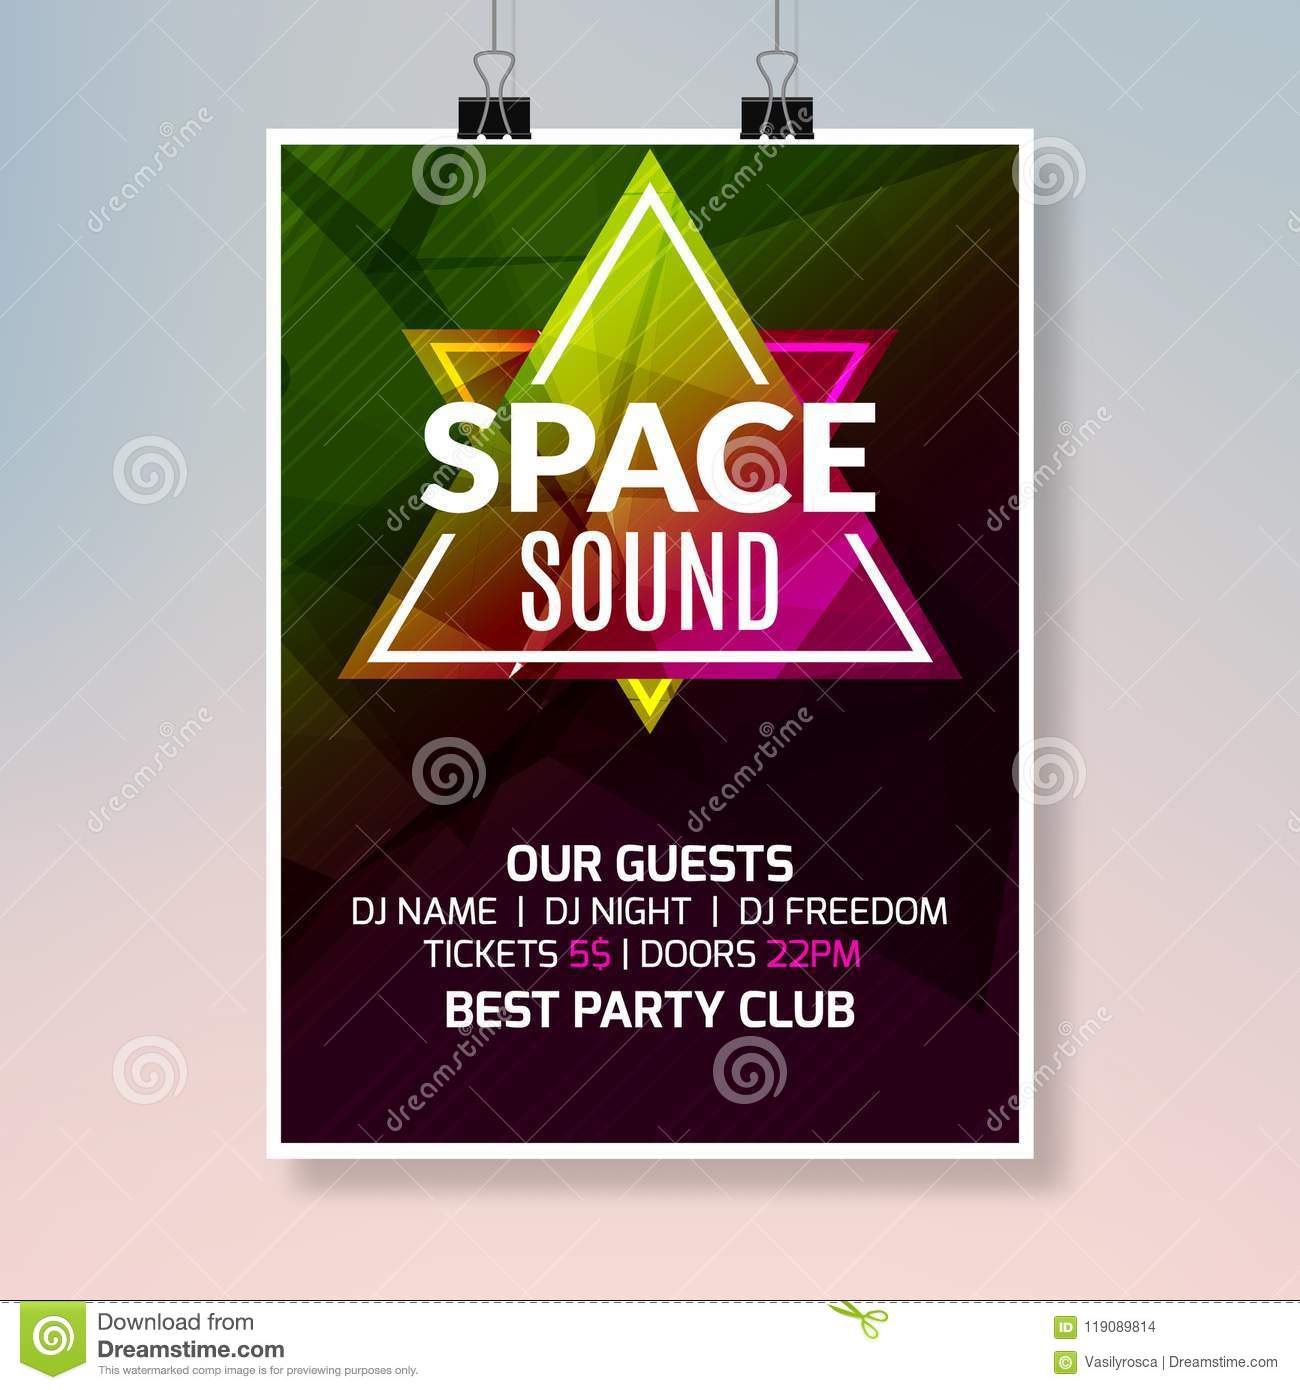 House Dance Music Poster Music Party Flyer Banner Design Disco Night Club Event Template Stock Vector Illustration Of Event Dance 119089814